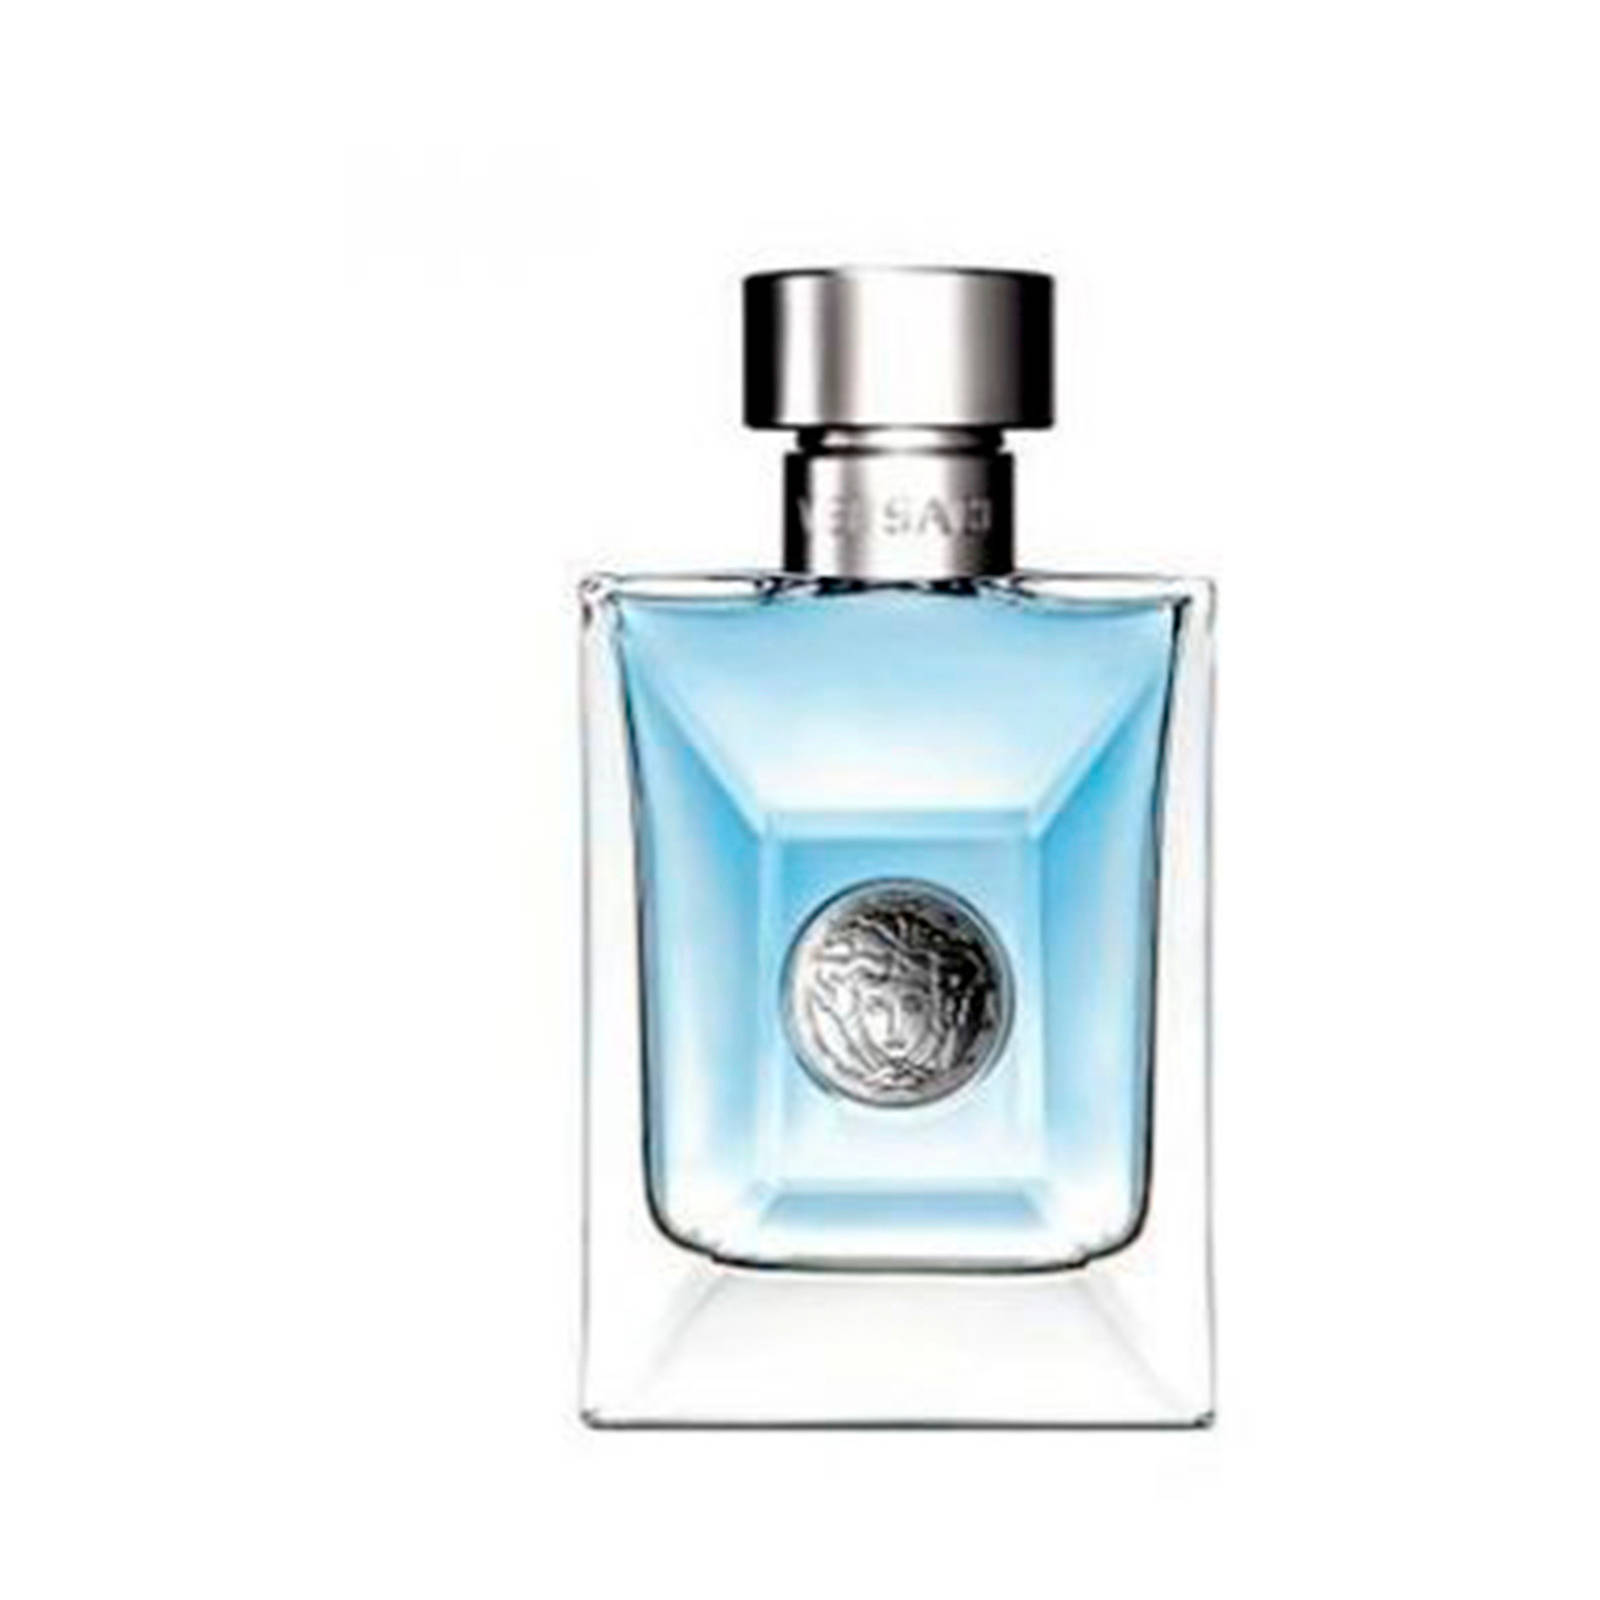 Versace Bright Crystal eau de toilette 30 ml | wehkamp